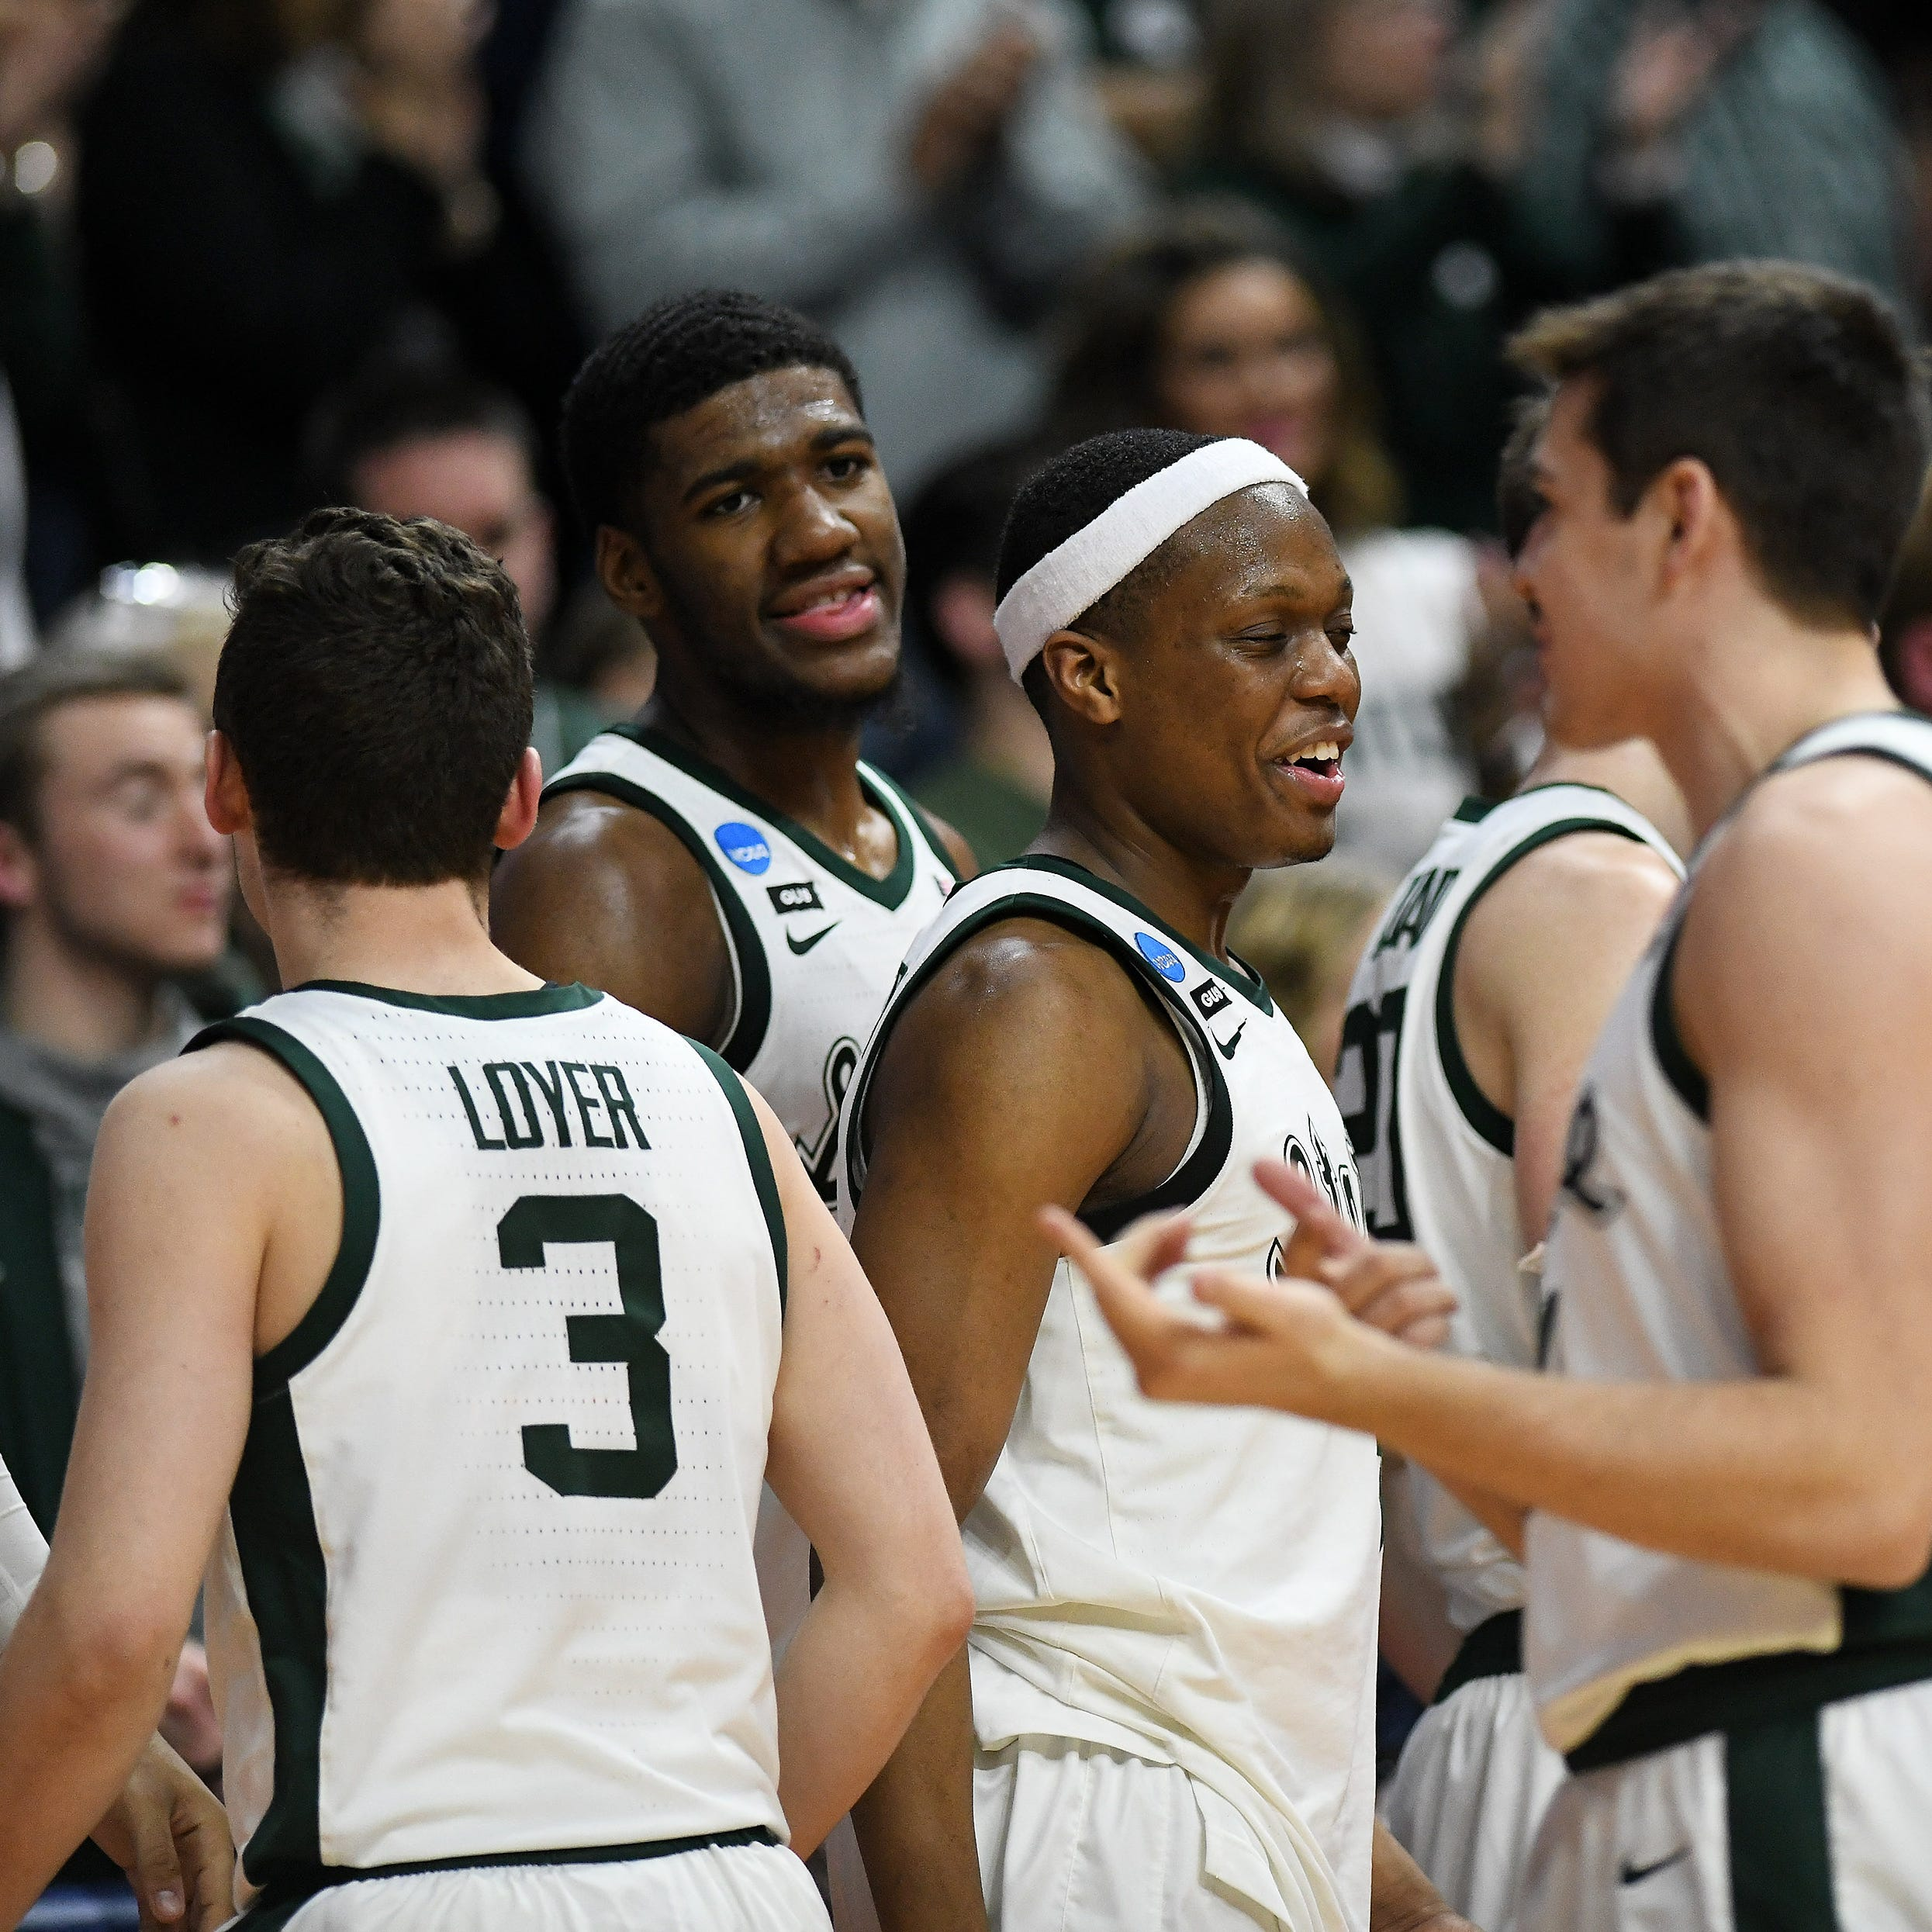 How much more does Cassius Winston have left in him? MSU's Tom Izzo intends to find out